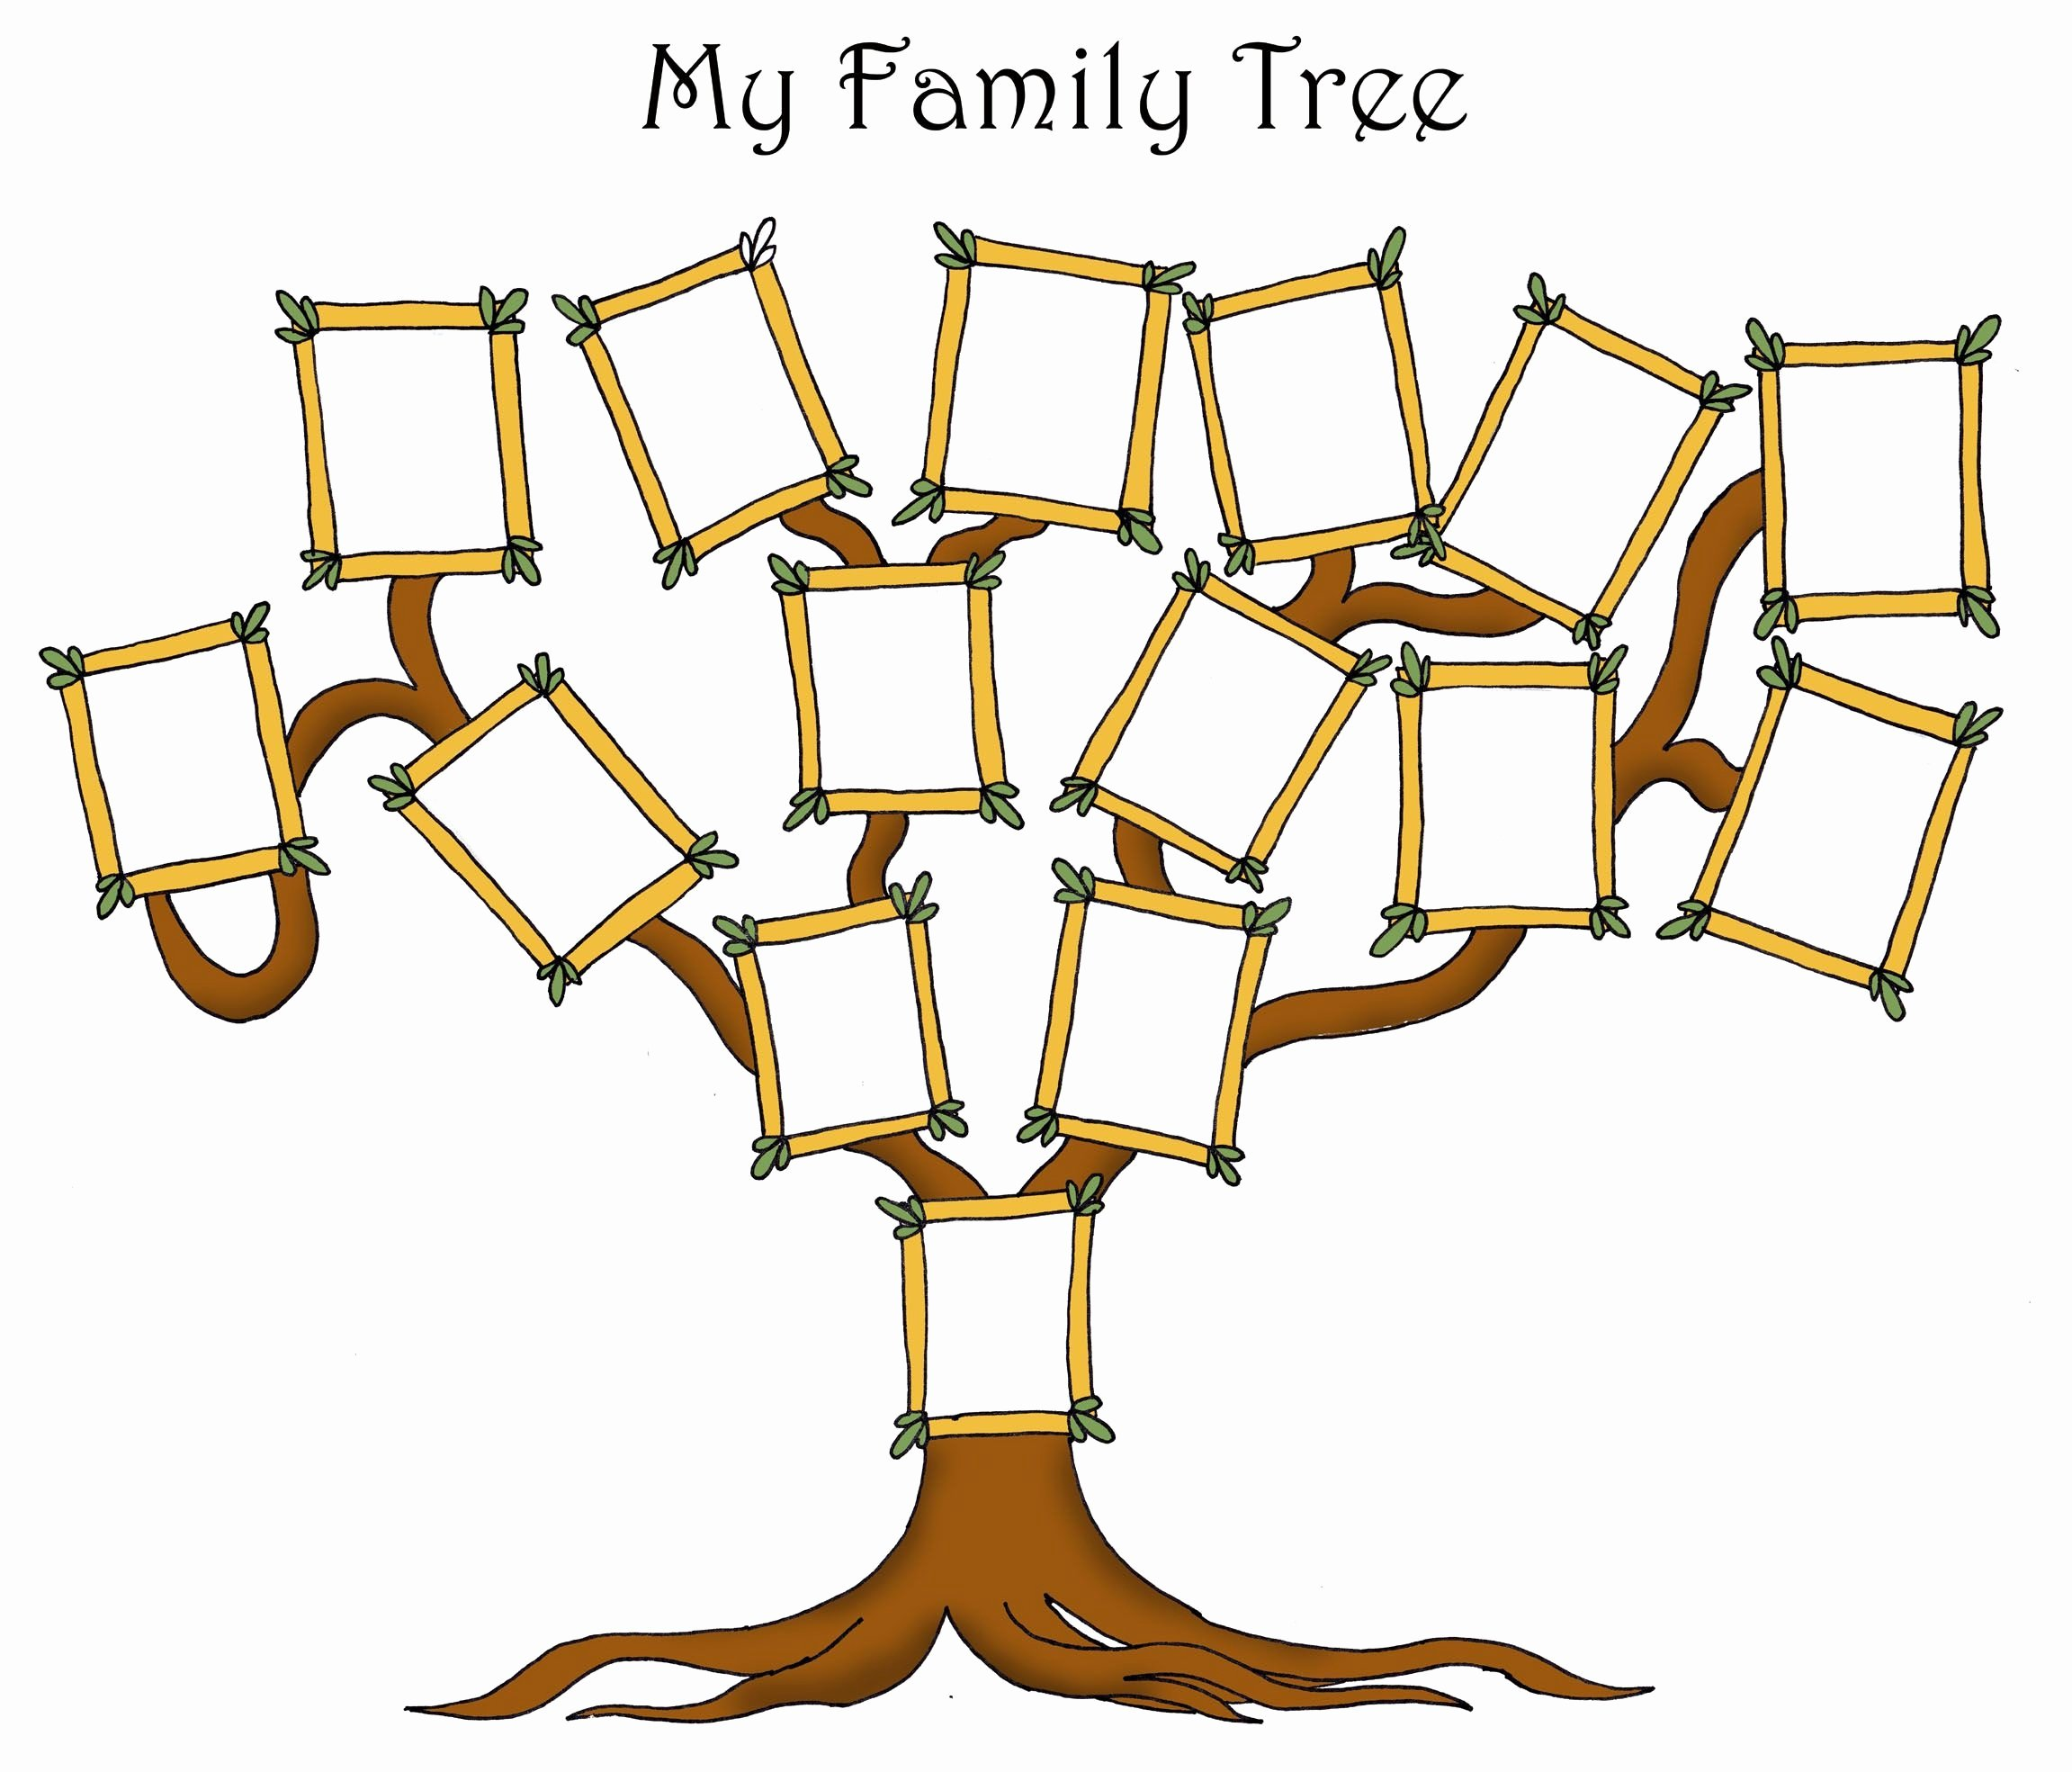 Blank Family Tree Template Elegant Free Editable Family Tree Template Daily Roabox